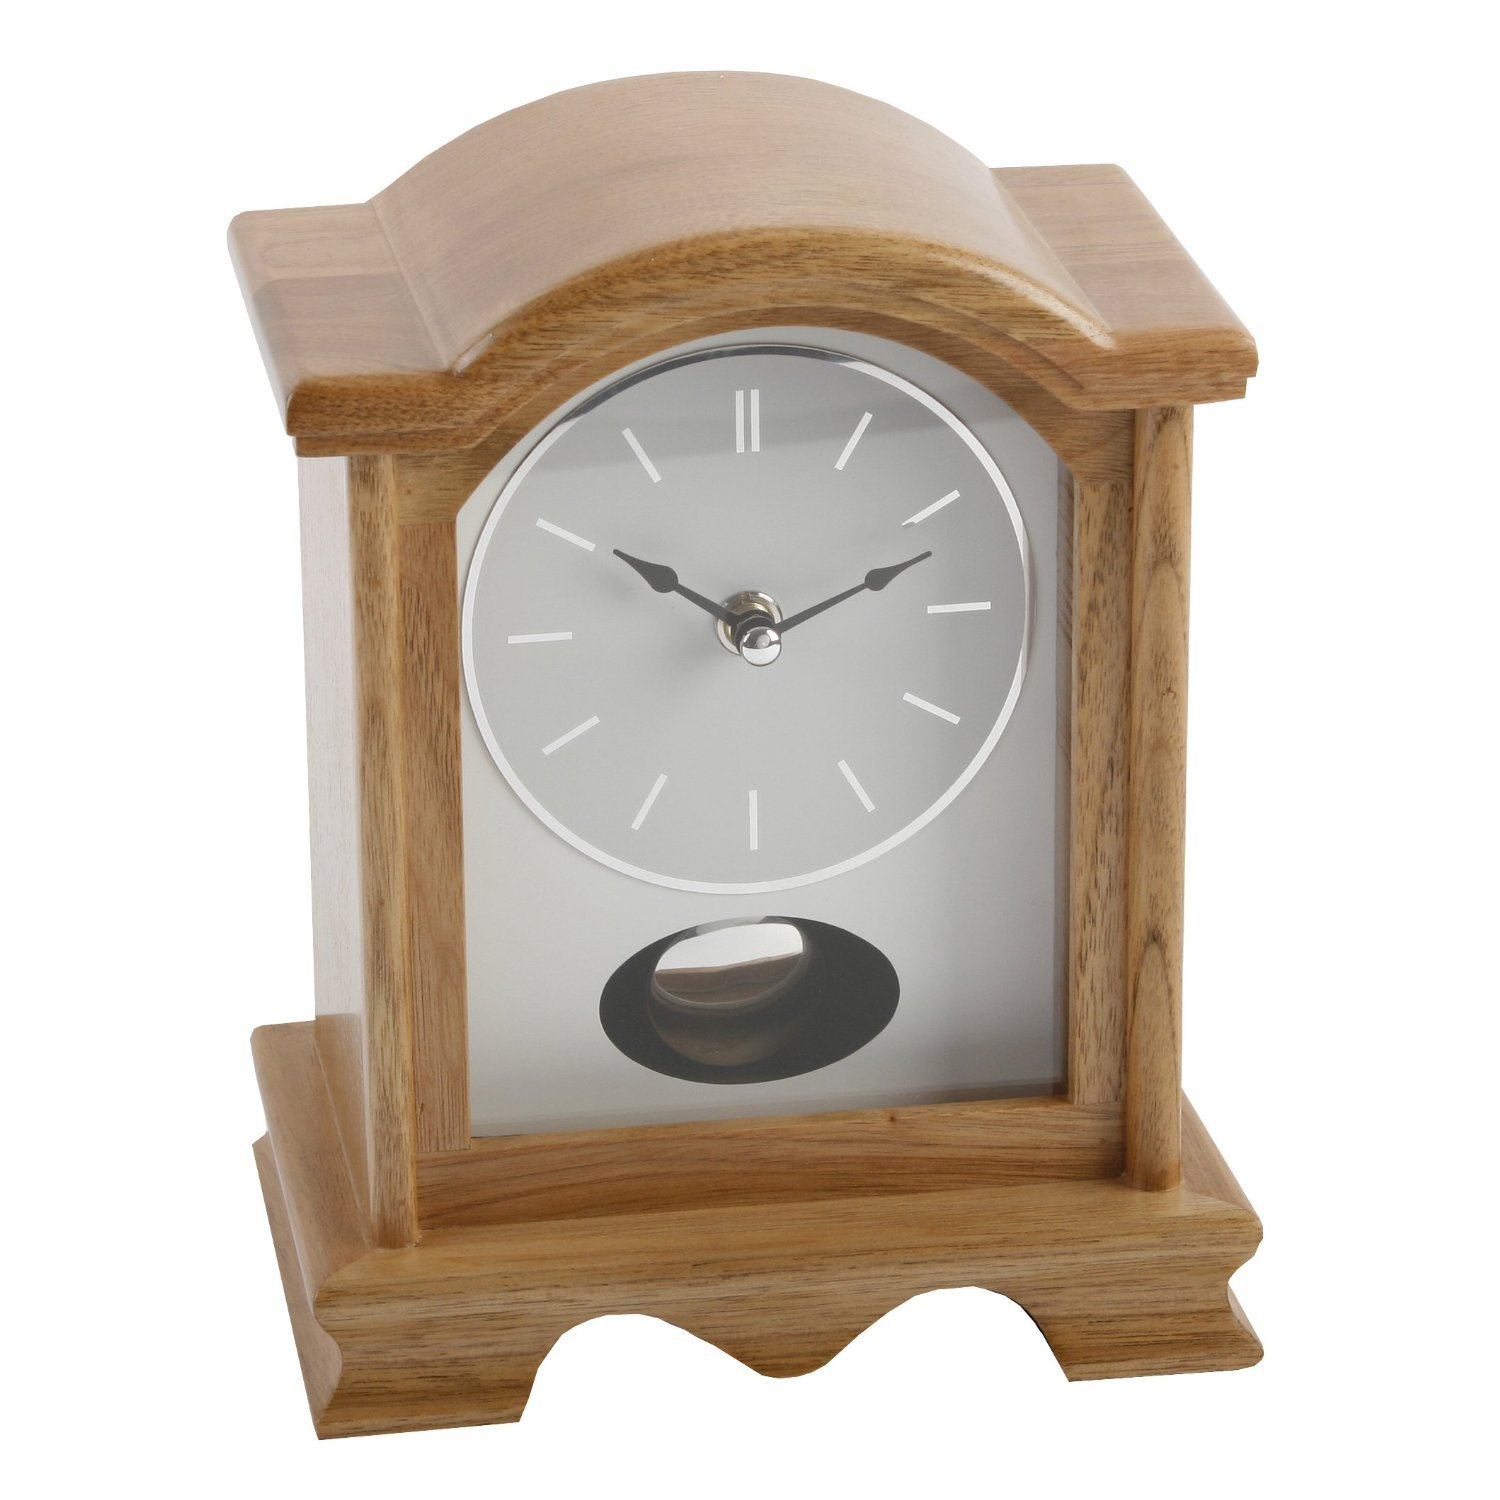 Broken Arch Oak Finish Wooden Mantel Clock with Pendulum Watching Clocks